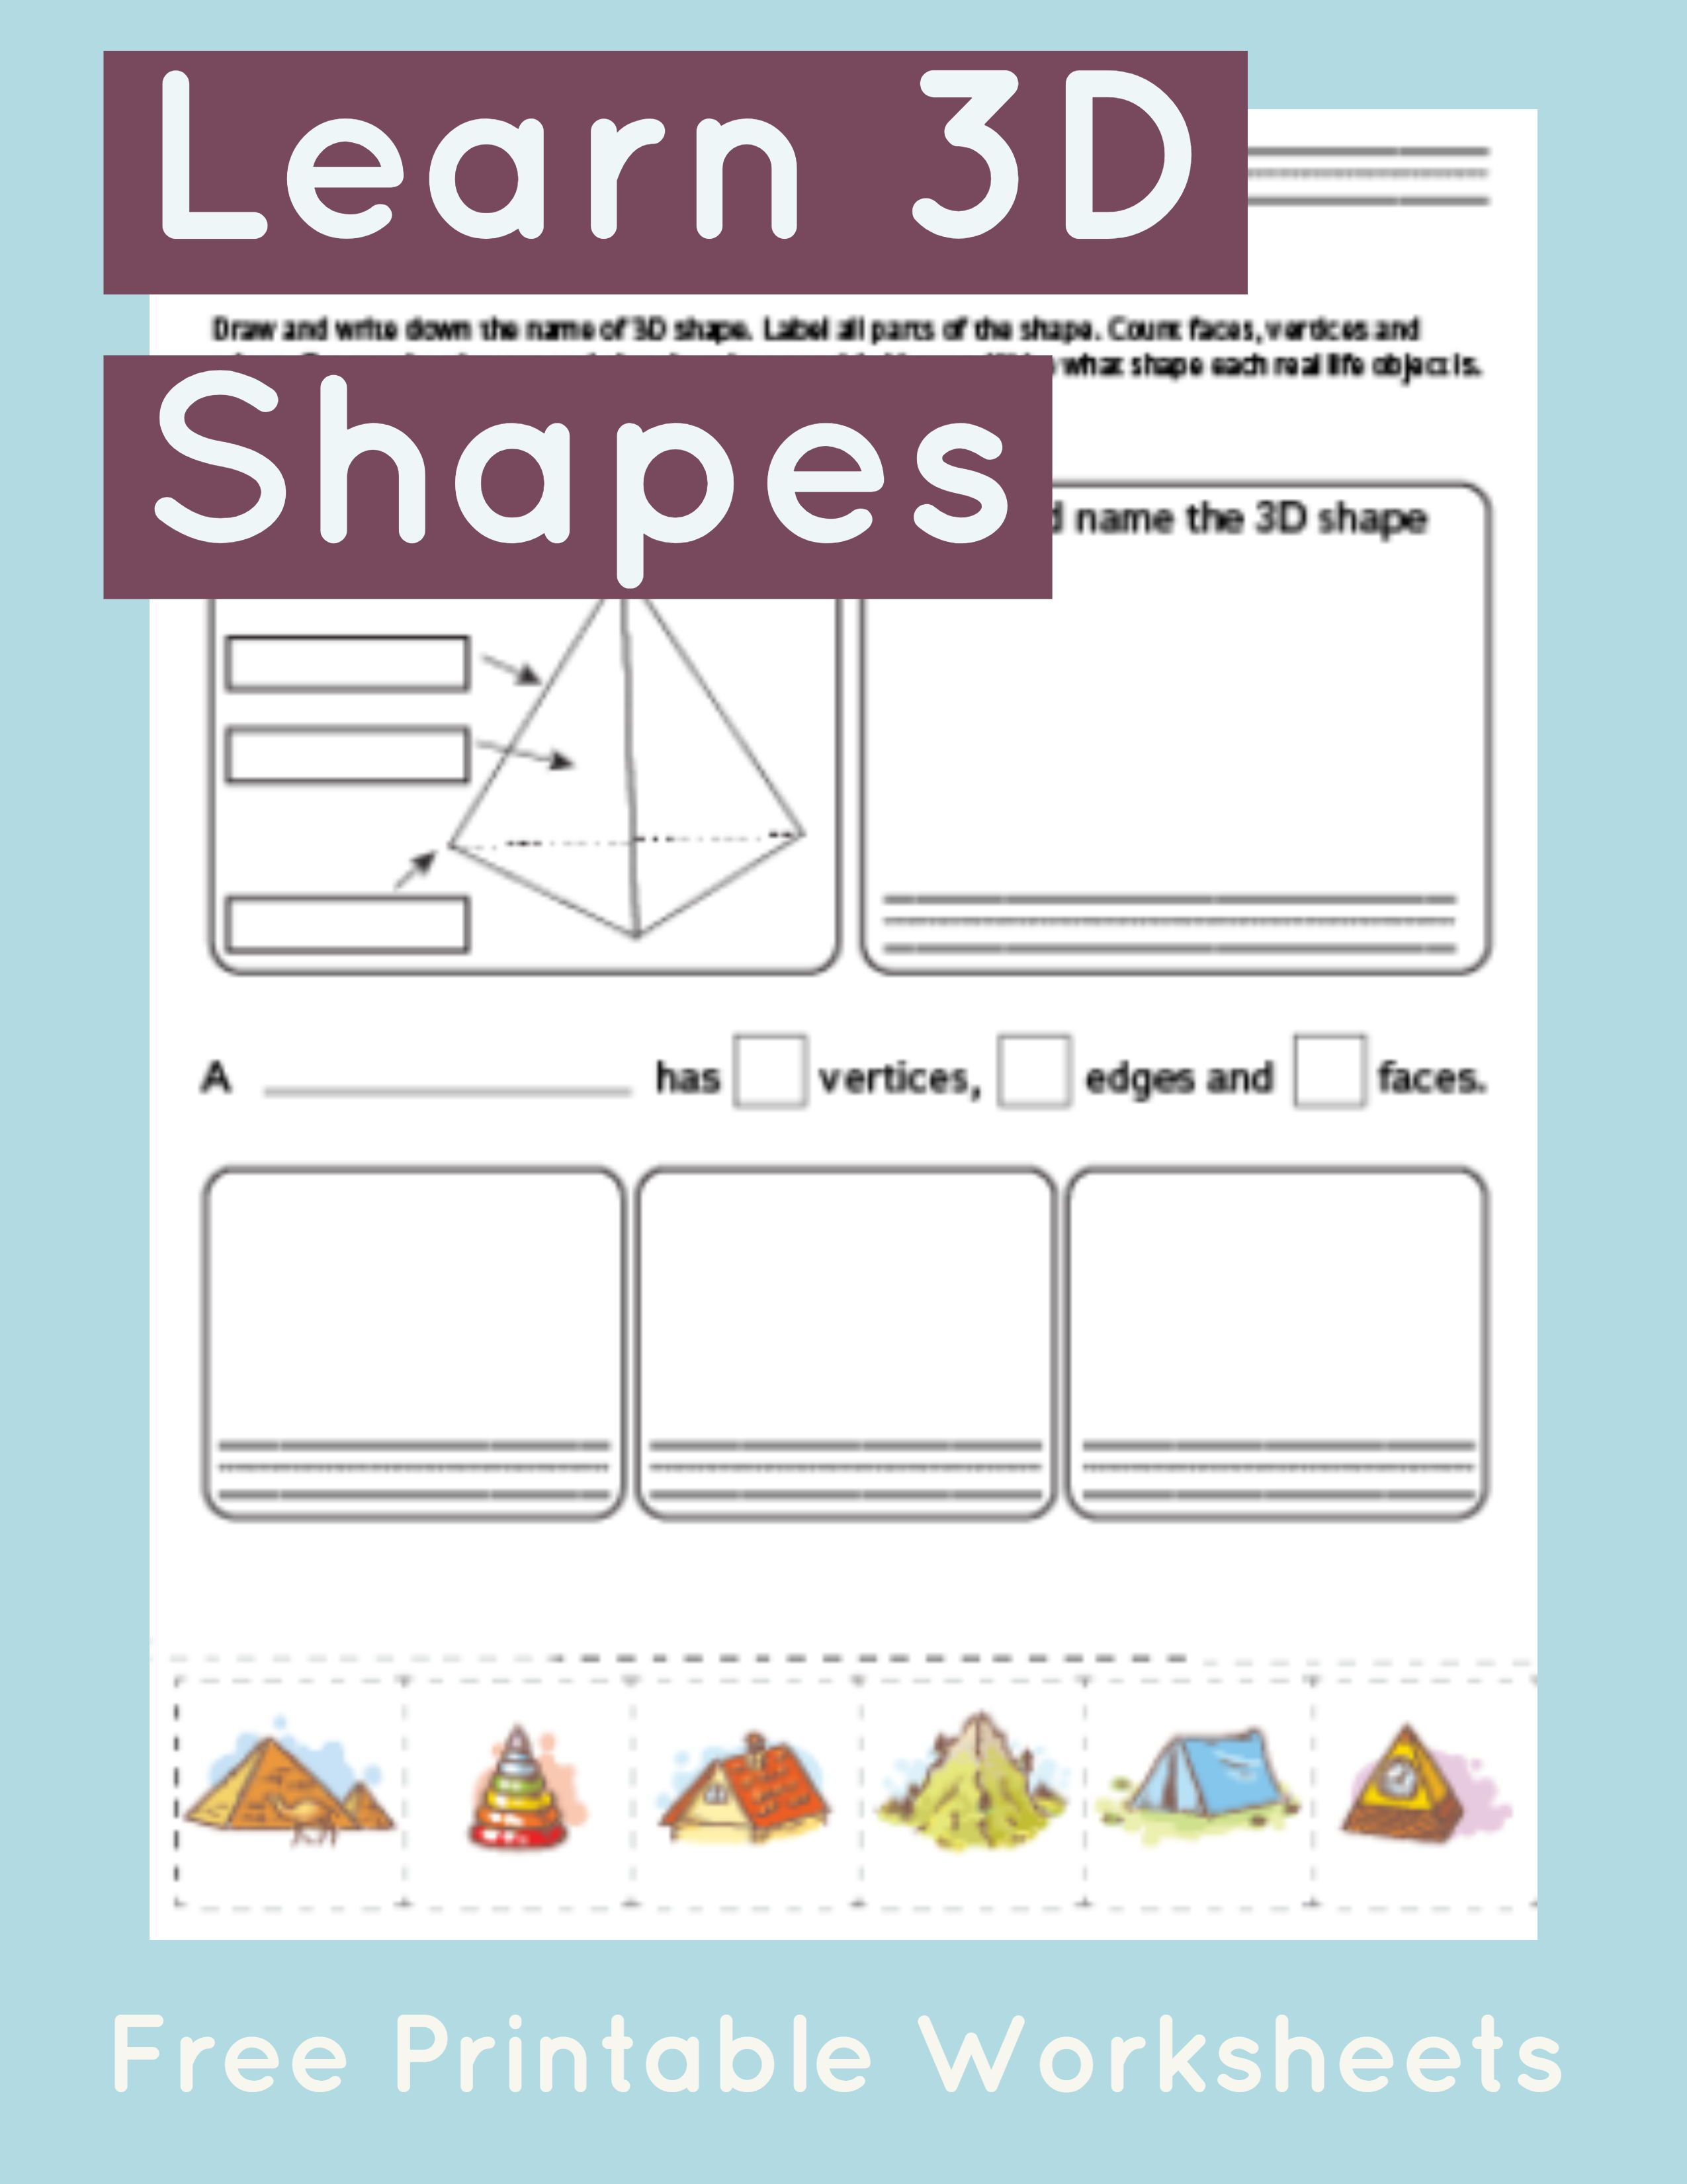 3d Shapes Faces Edges Vertices Worksheet   Printable Worksheets and  Activities for Teachers [ 3301 x 2550 Pixel ]